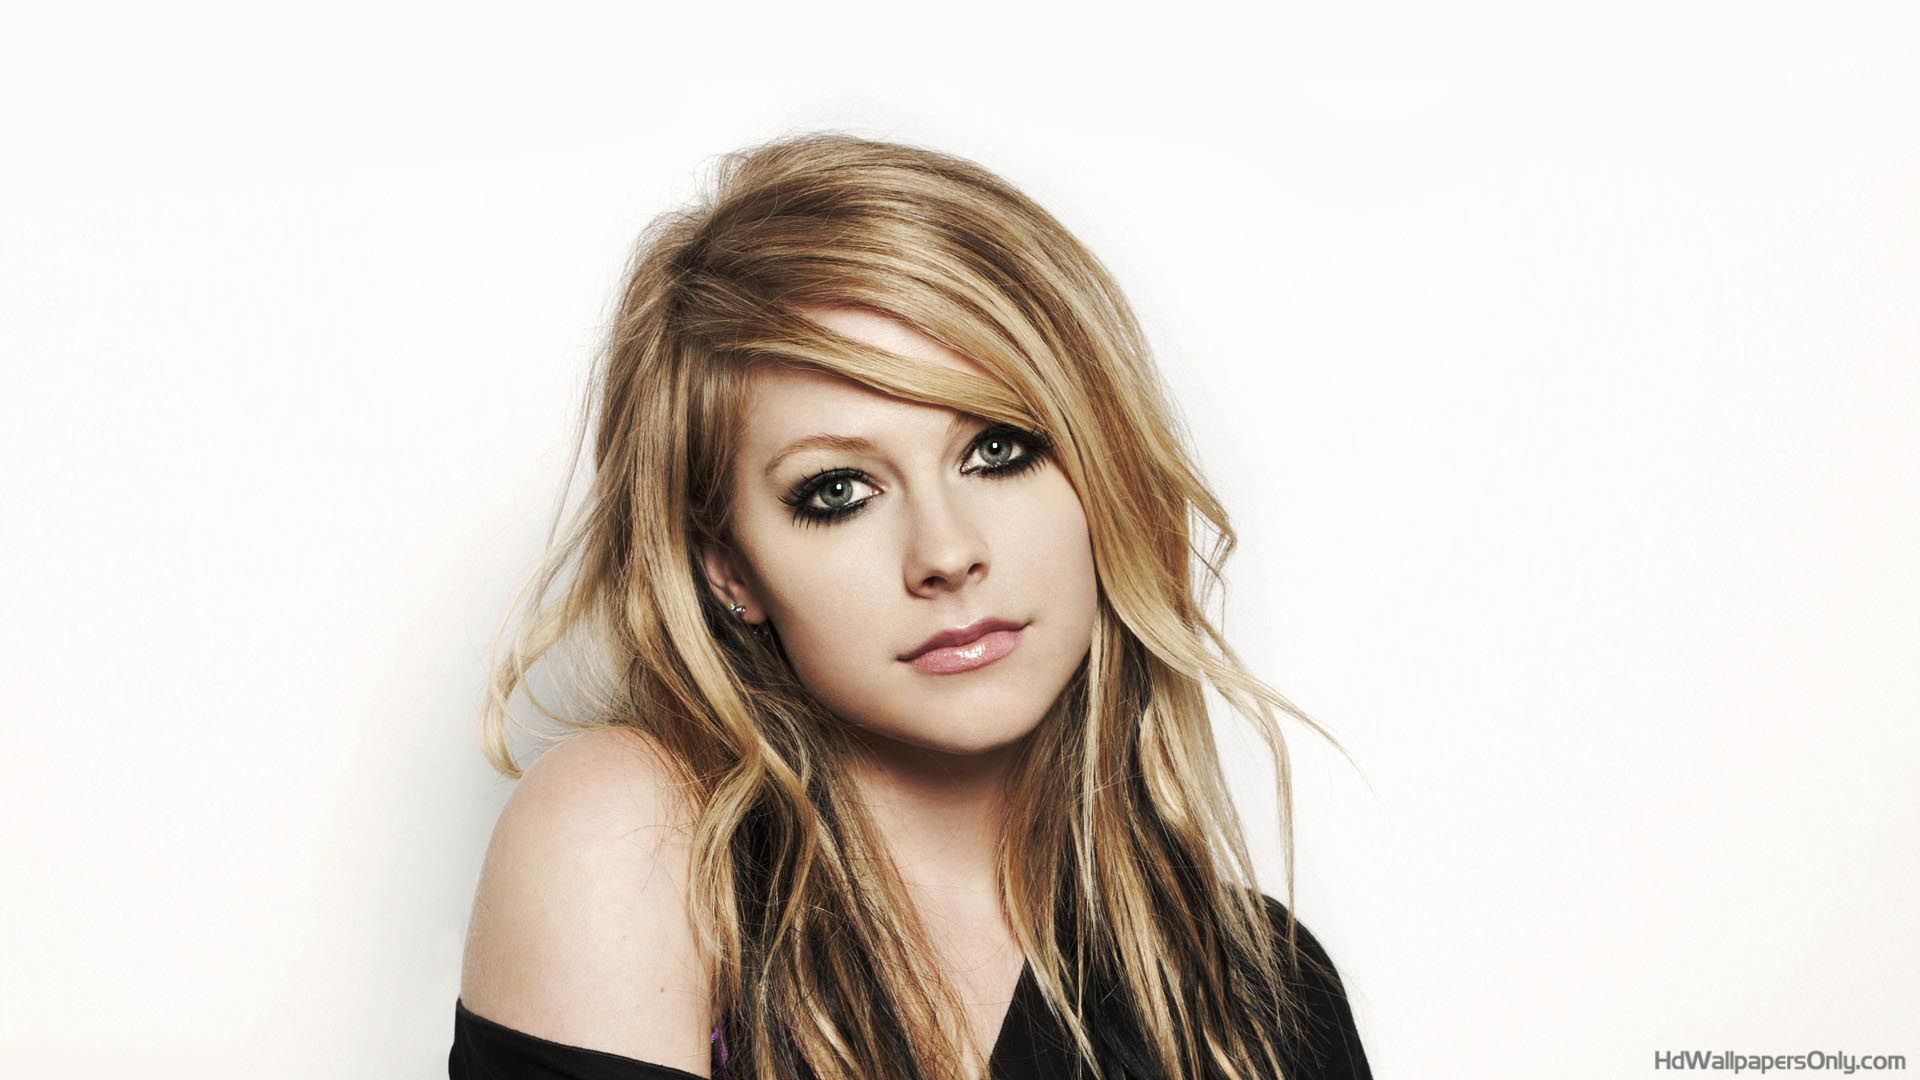 Avril Lavigne HD Wallpapers Free Download Here TechBeasts